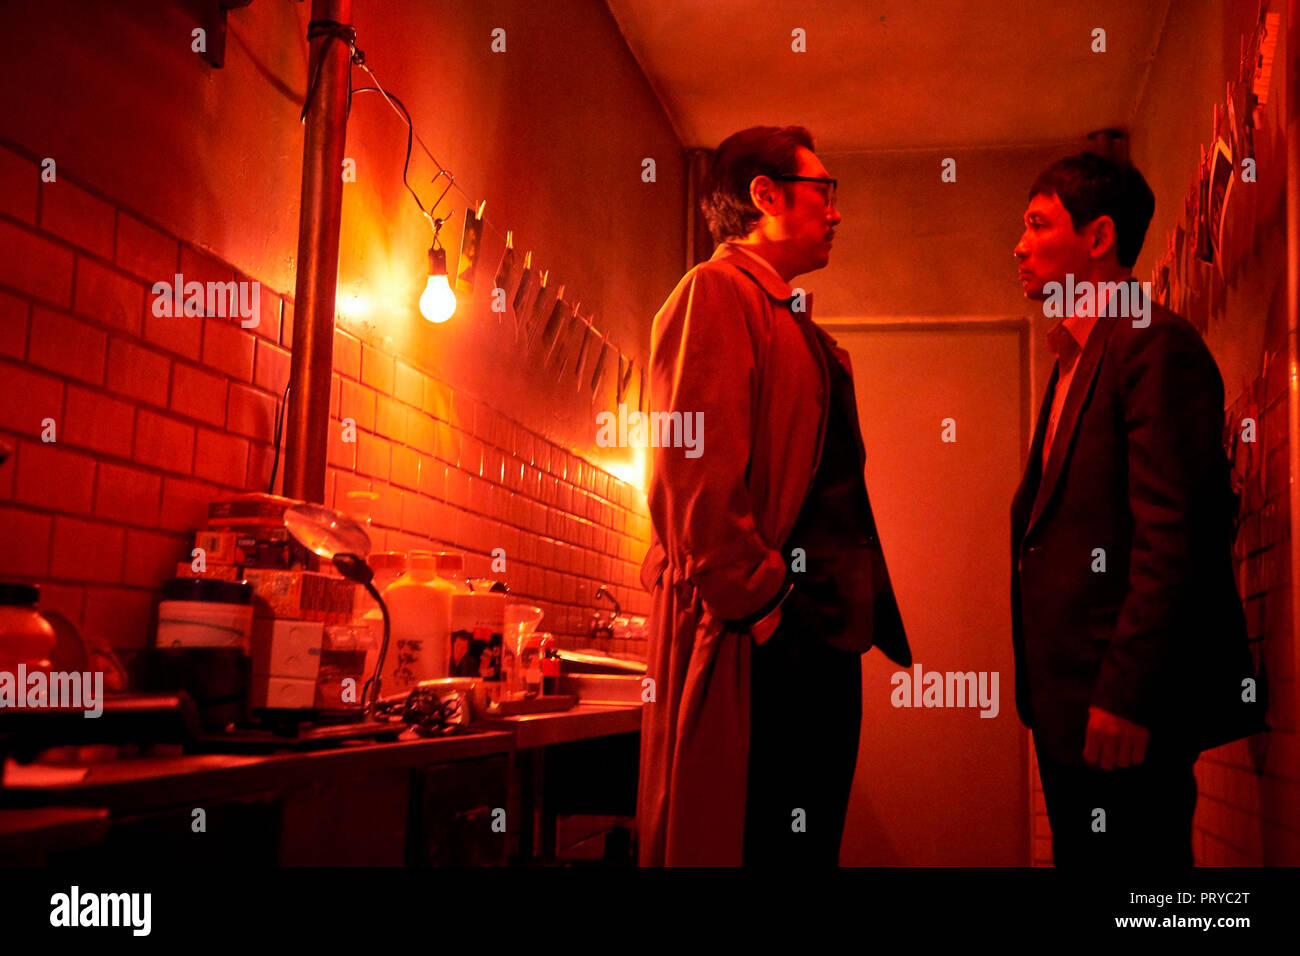 Jung Yoon Stock Photos & Jung Yoon Stock Images - Alamy